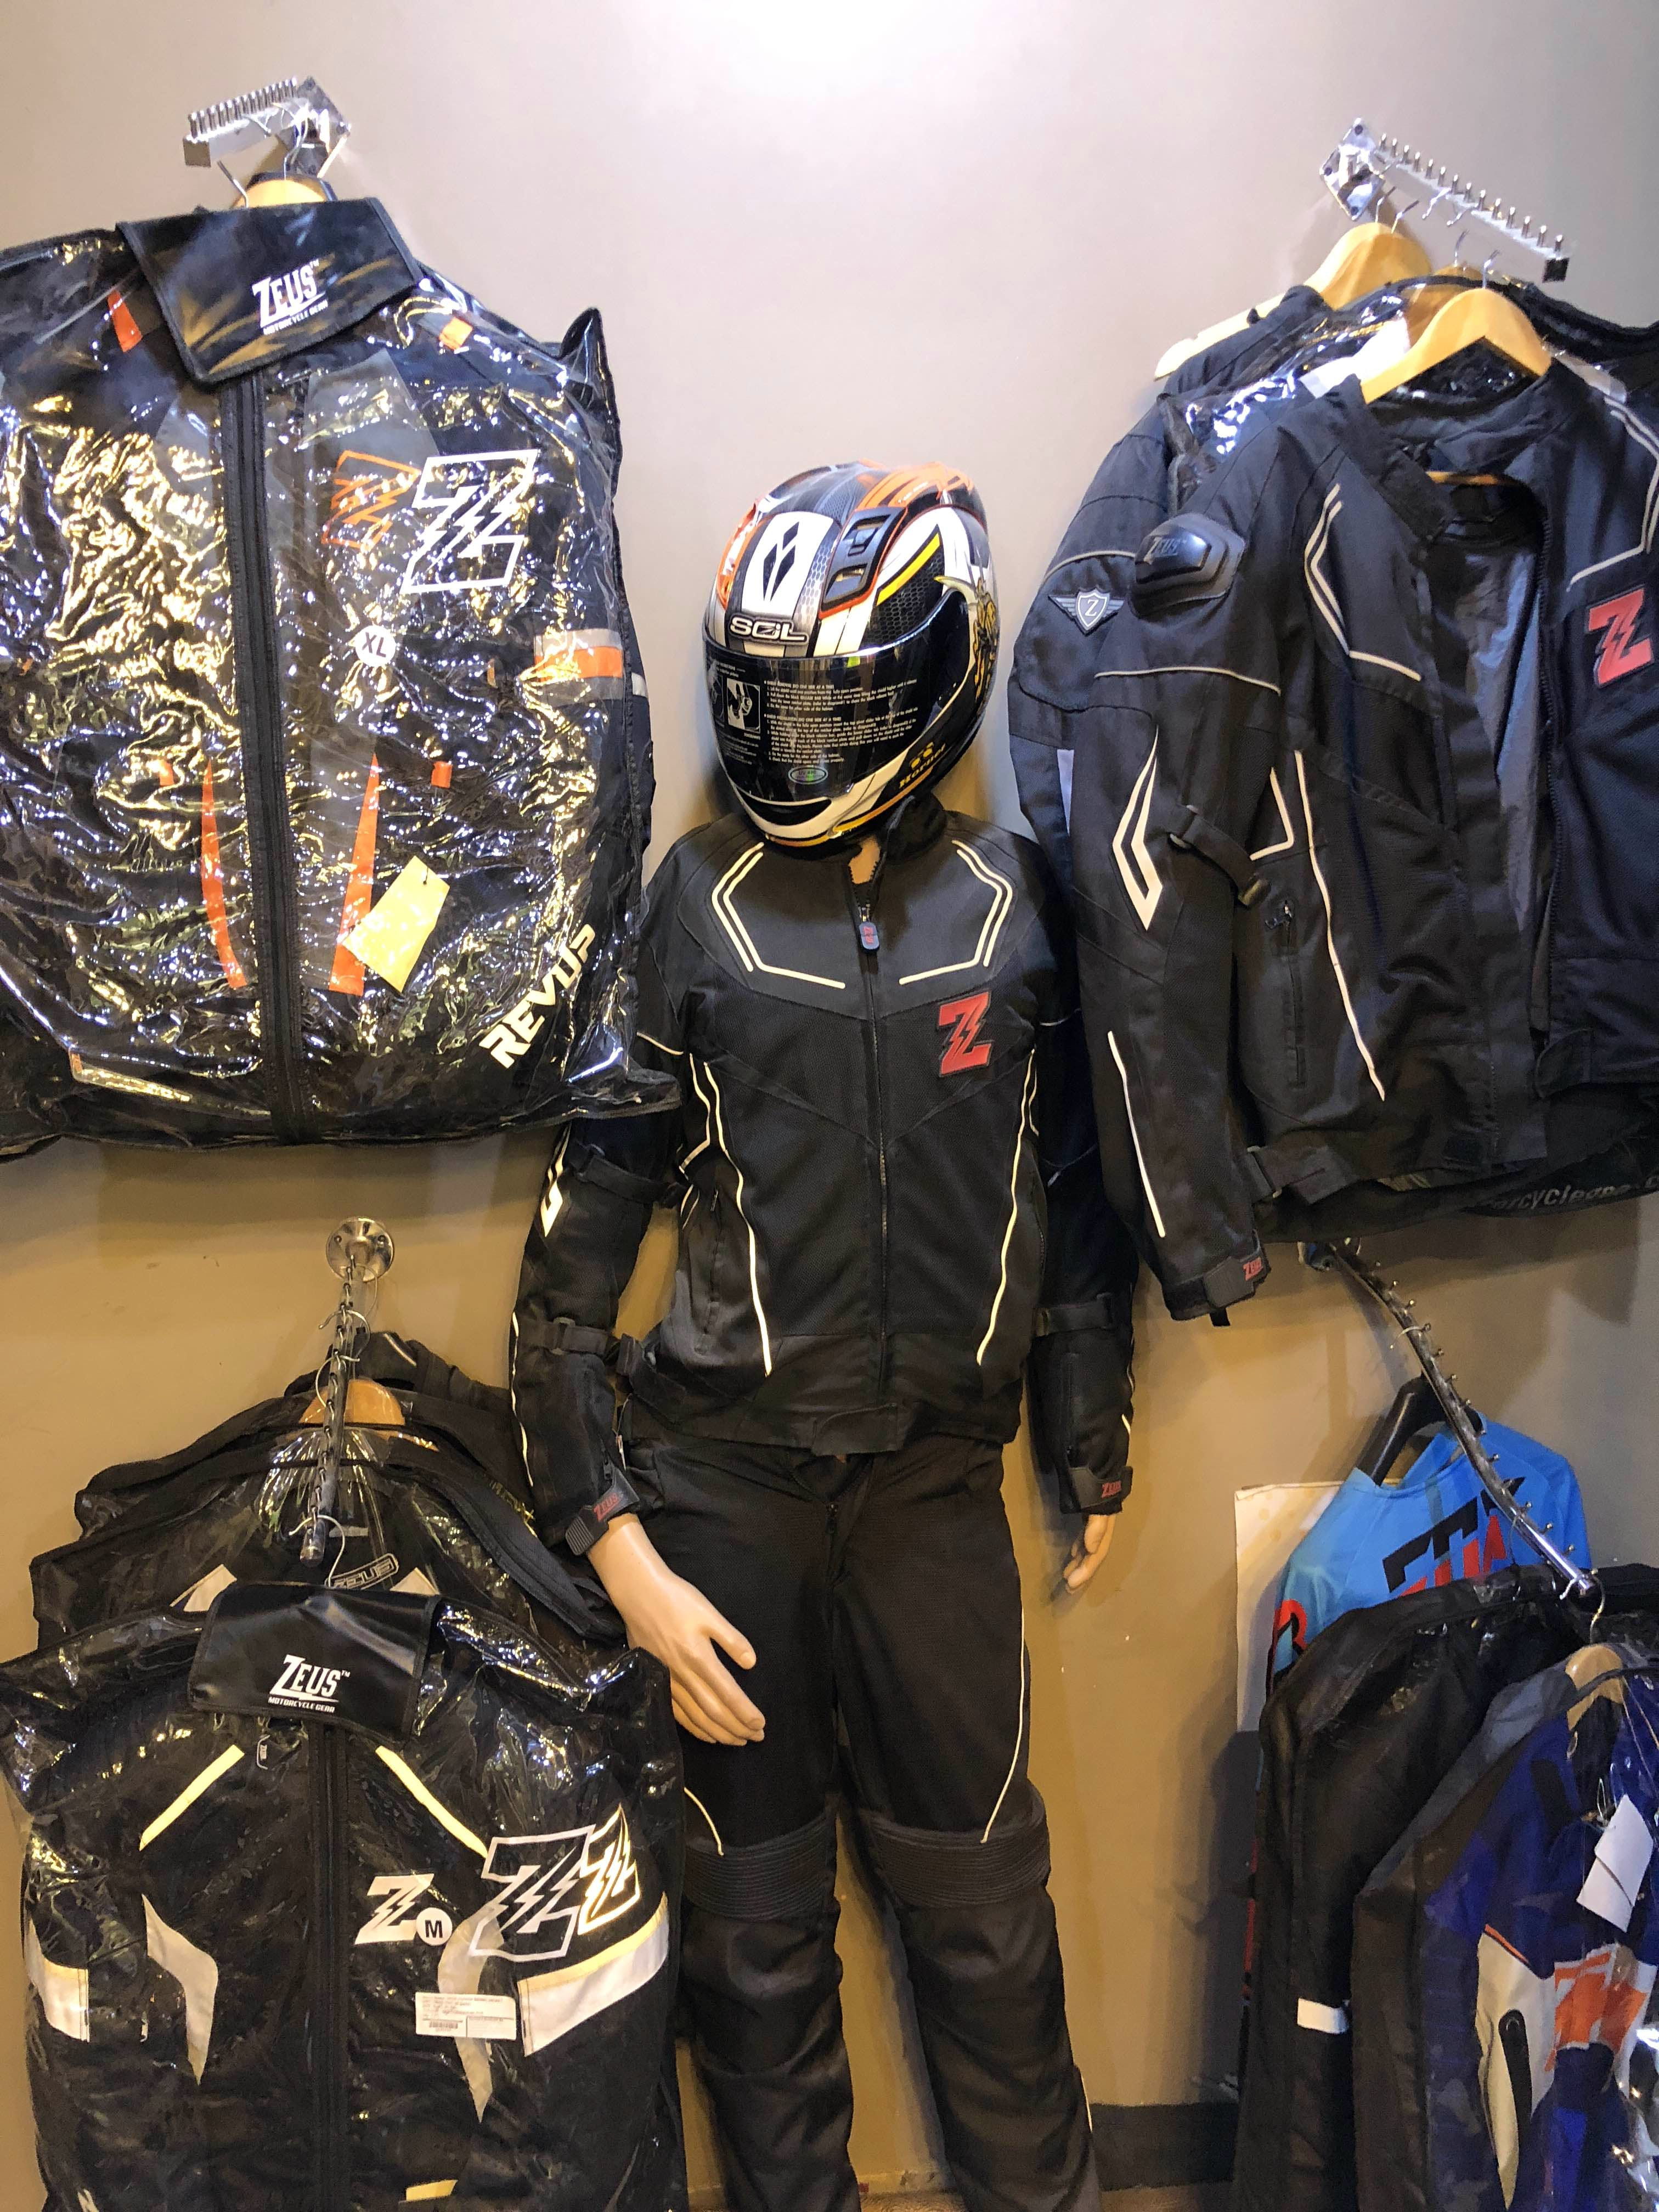 Personal protective equipment,Helmet,Motorcycle accessories,Sports gear,Motorcycle helmet,Jacket,Outerwear,Sportswear